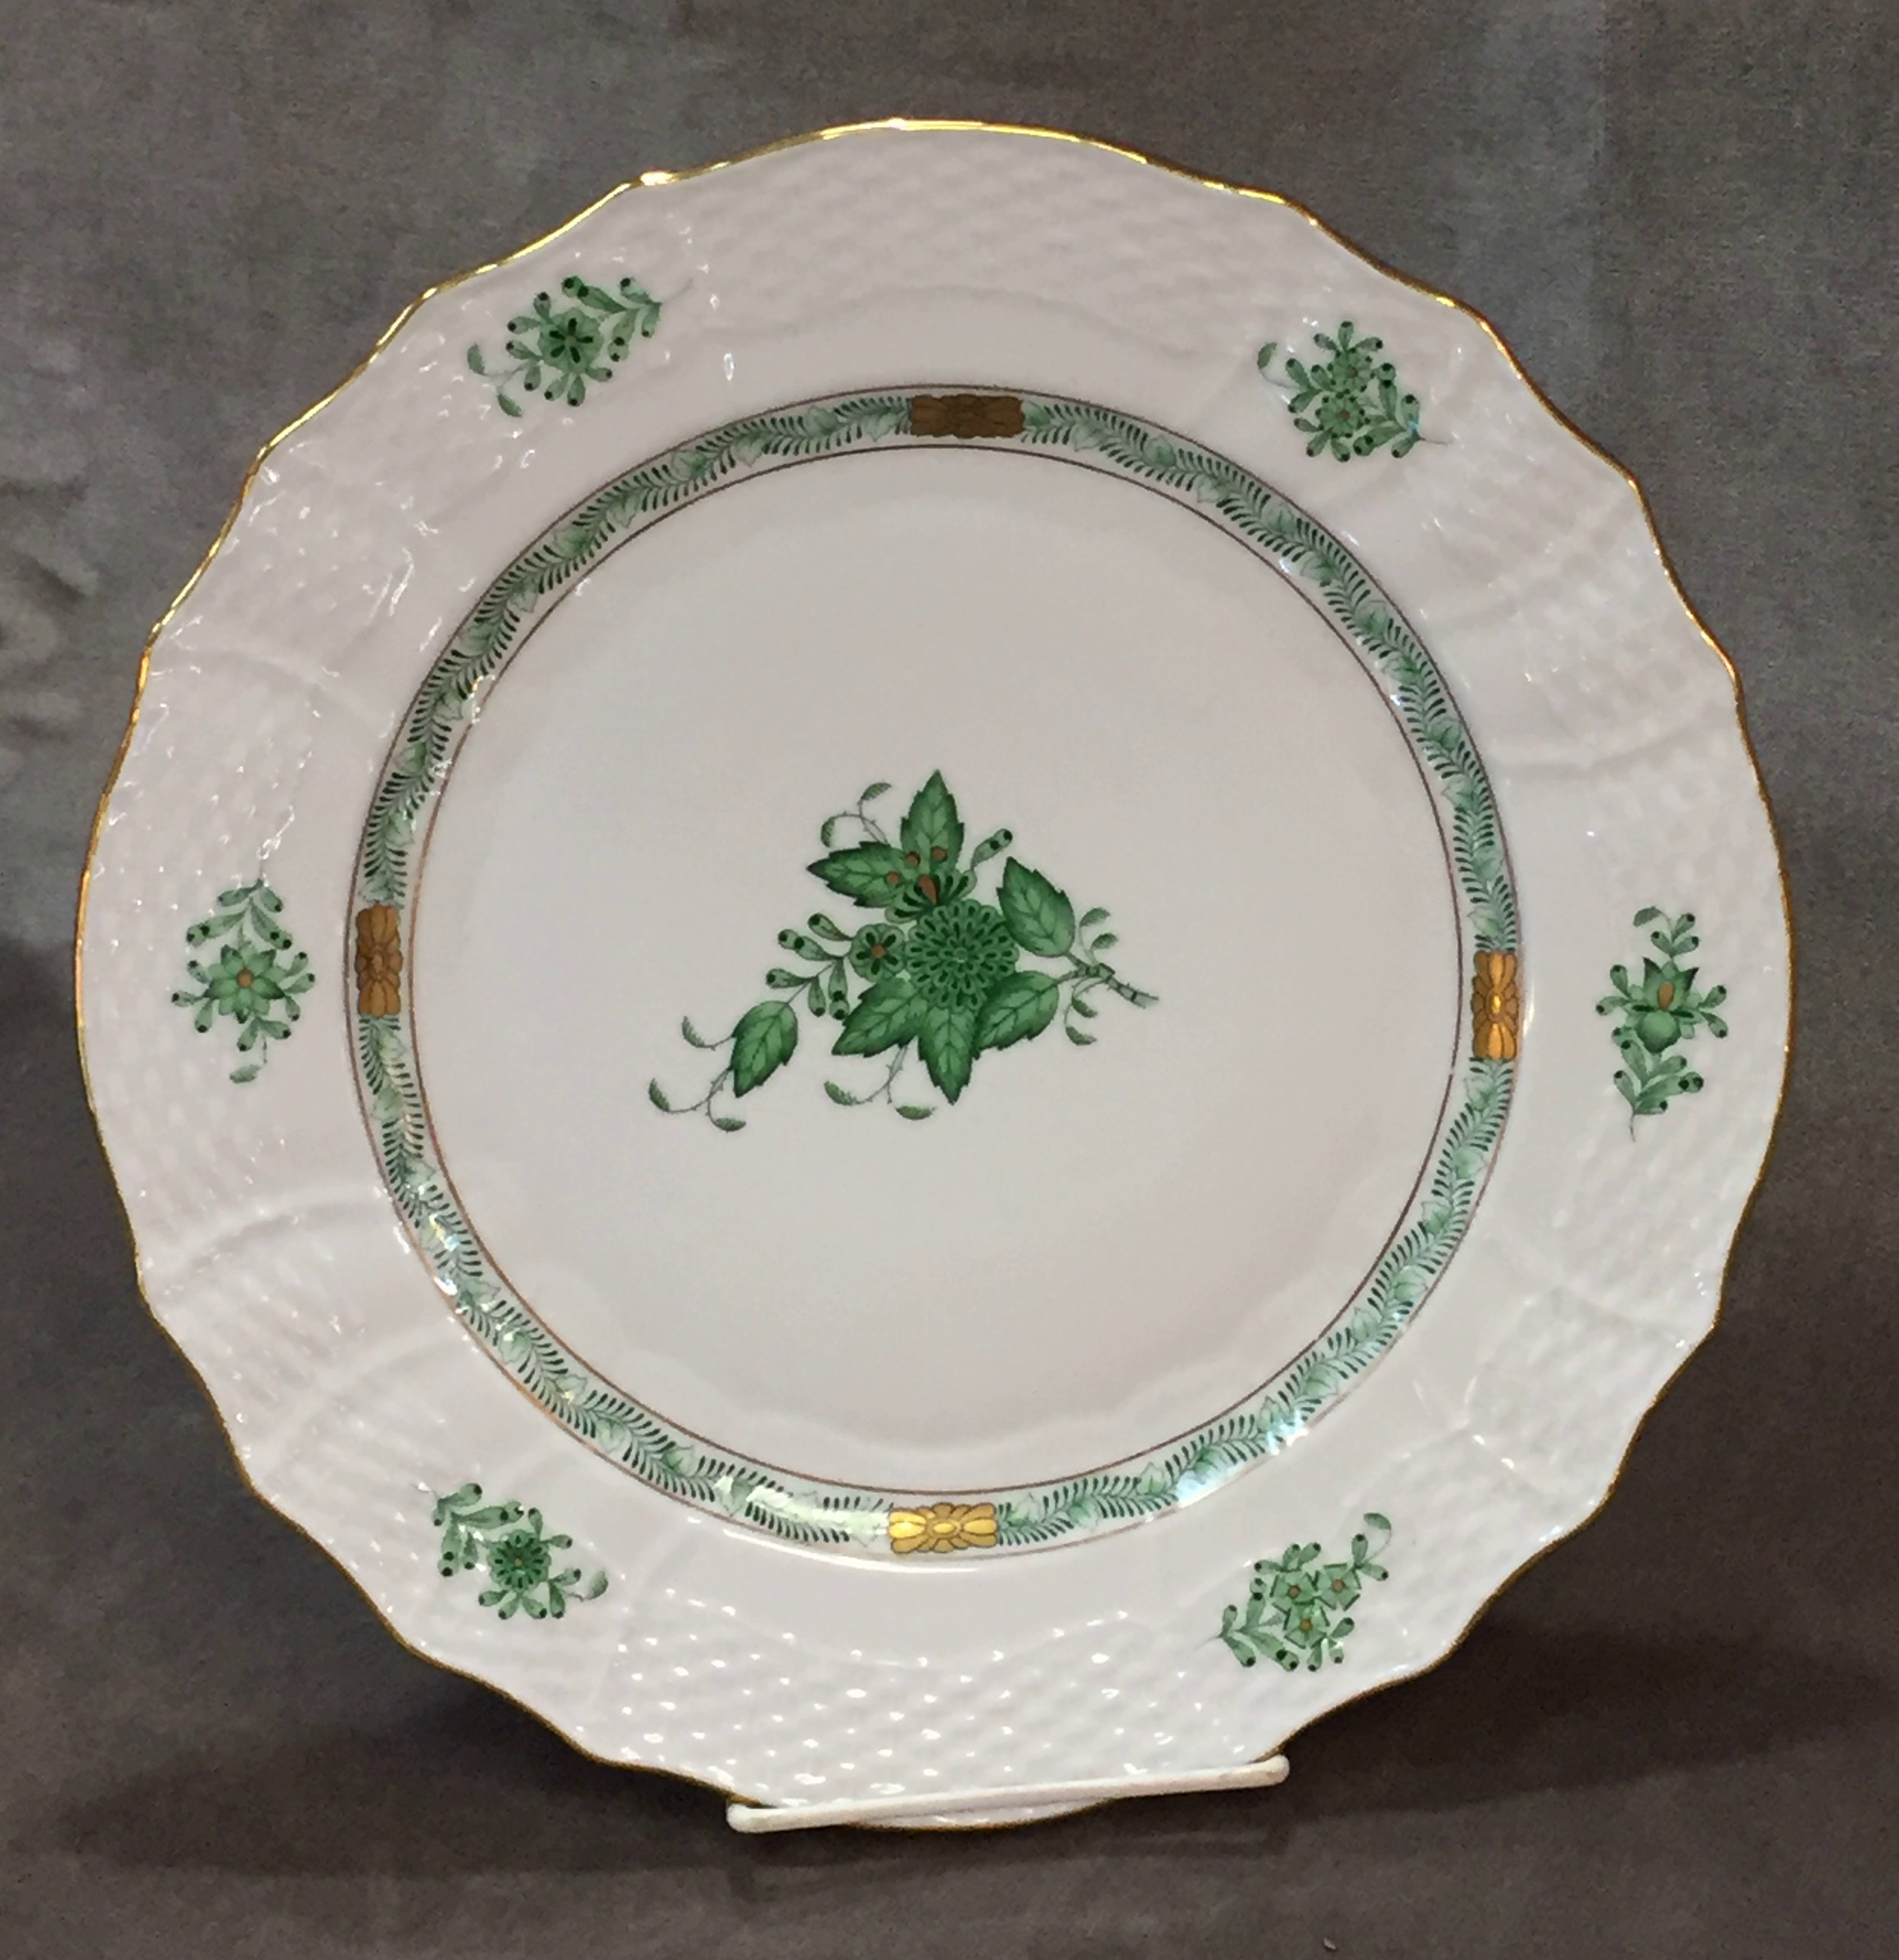 Herend Hungary Green CHINESE BOUQUET 11  Charger / Dinner Plate Hungarian Dinnerware & Herend Hungary Green CHINESE BOUQUET 11